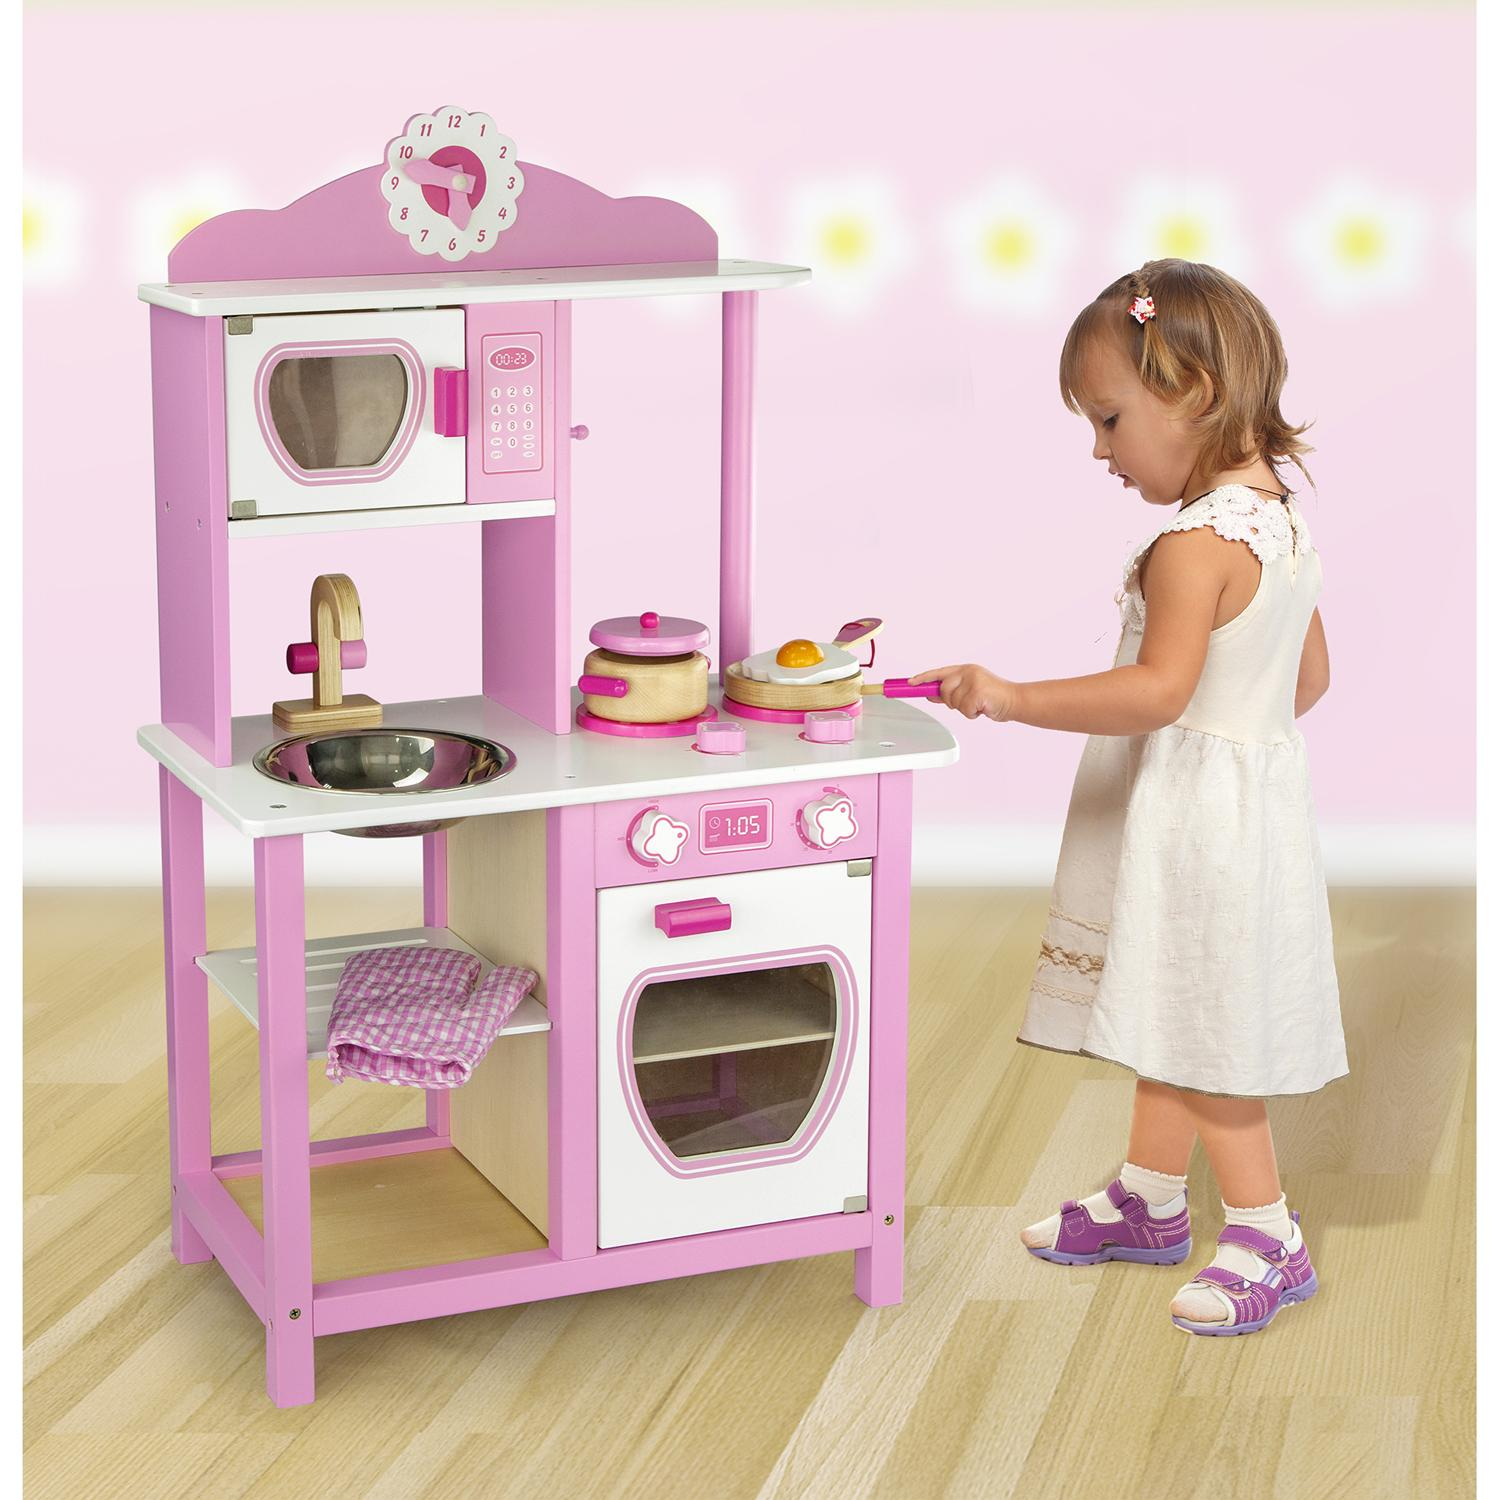 Childrens Wooden Kitchen Sets wooden toy kitchen. educational toys kitchen cooking play set role